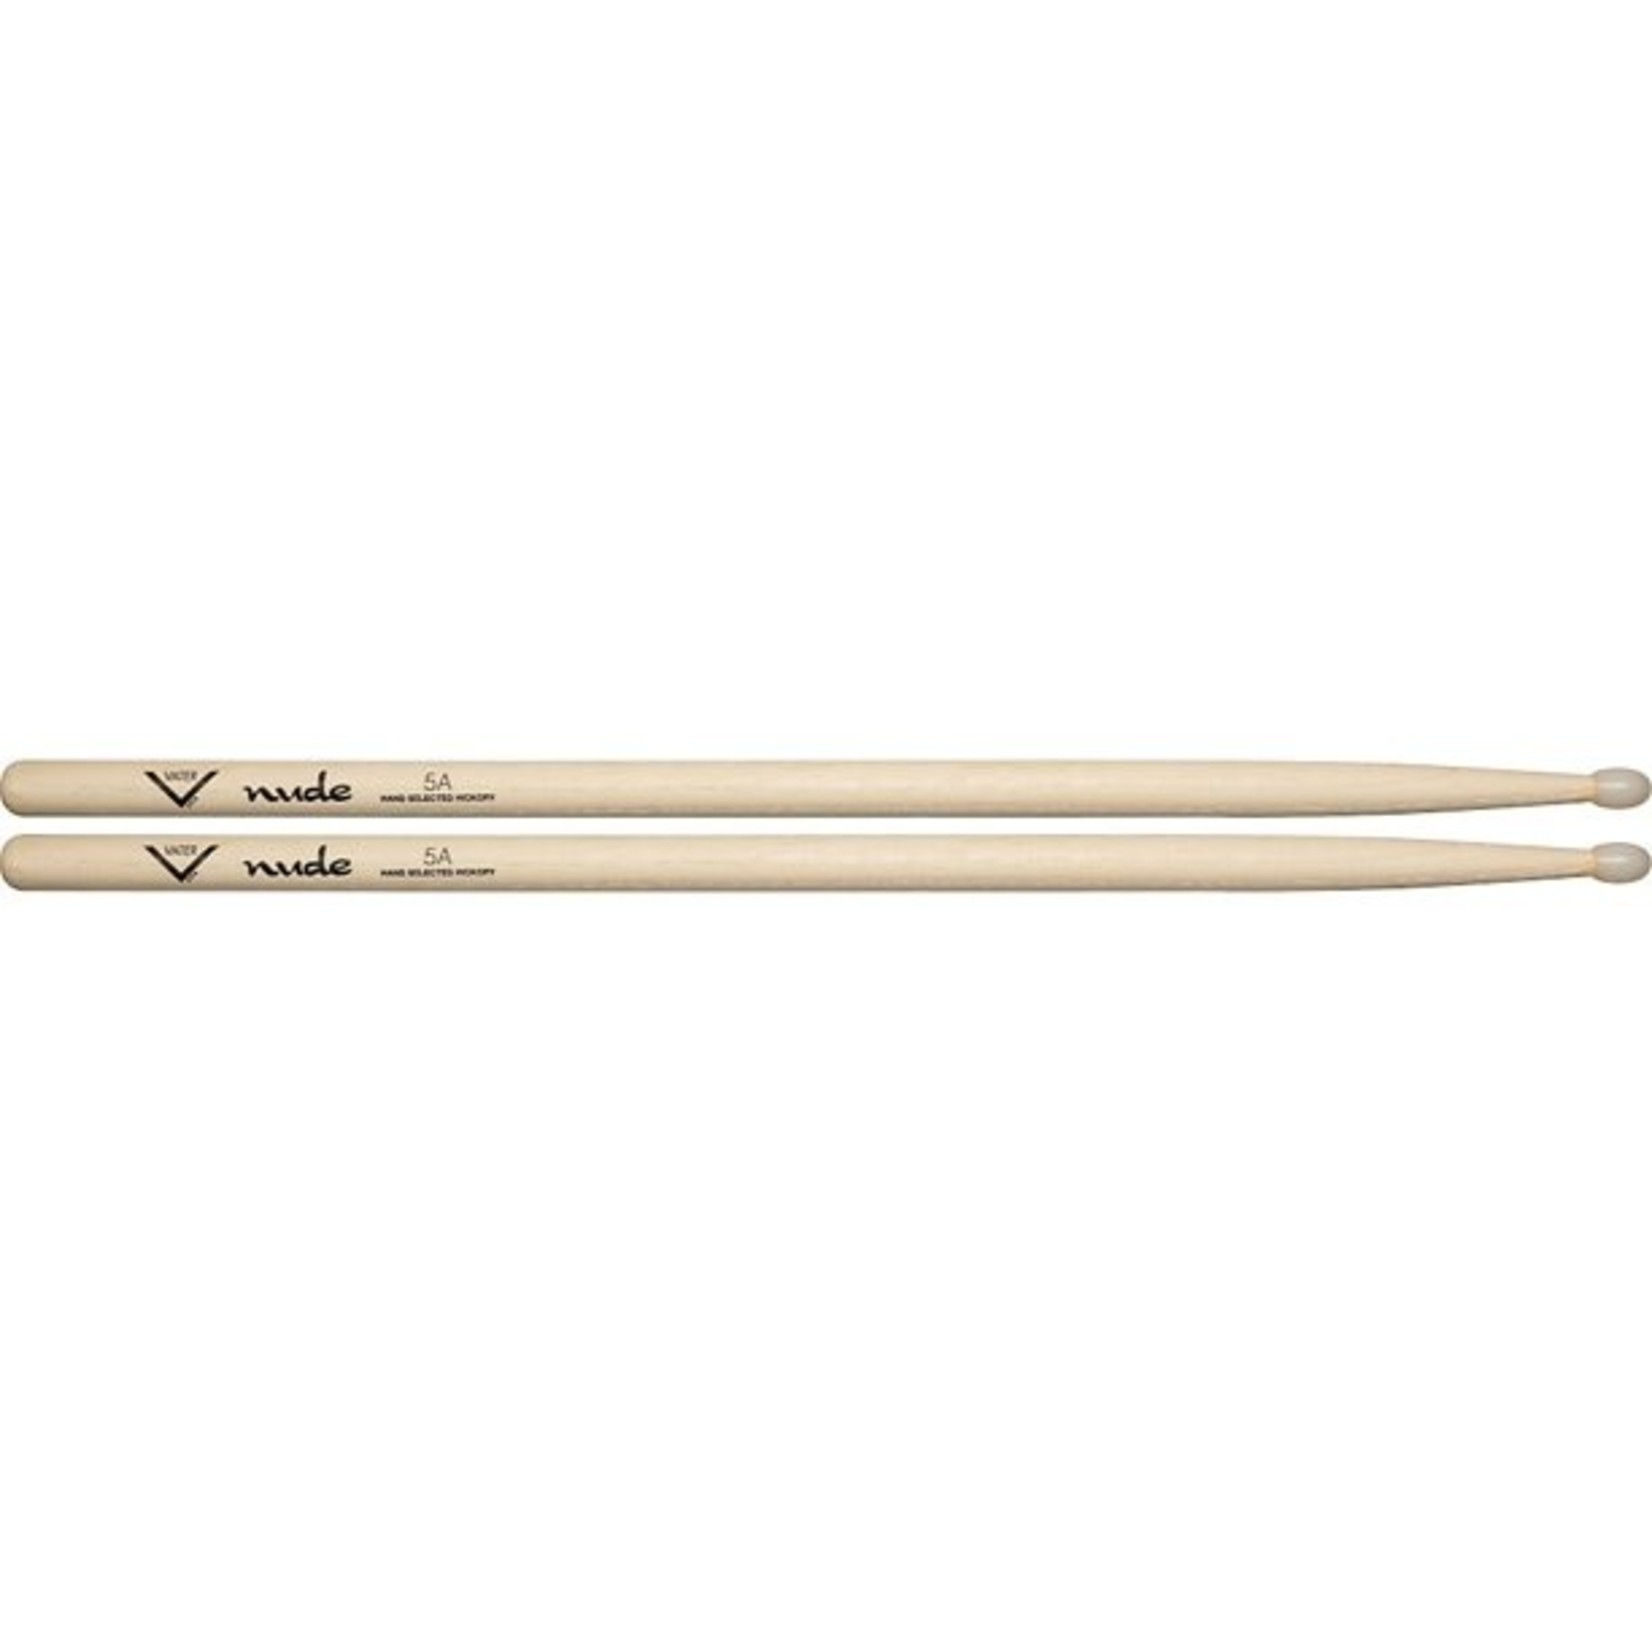 Vater Vater Nude 5A Nylon